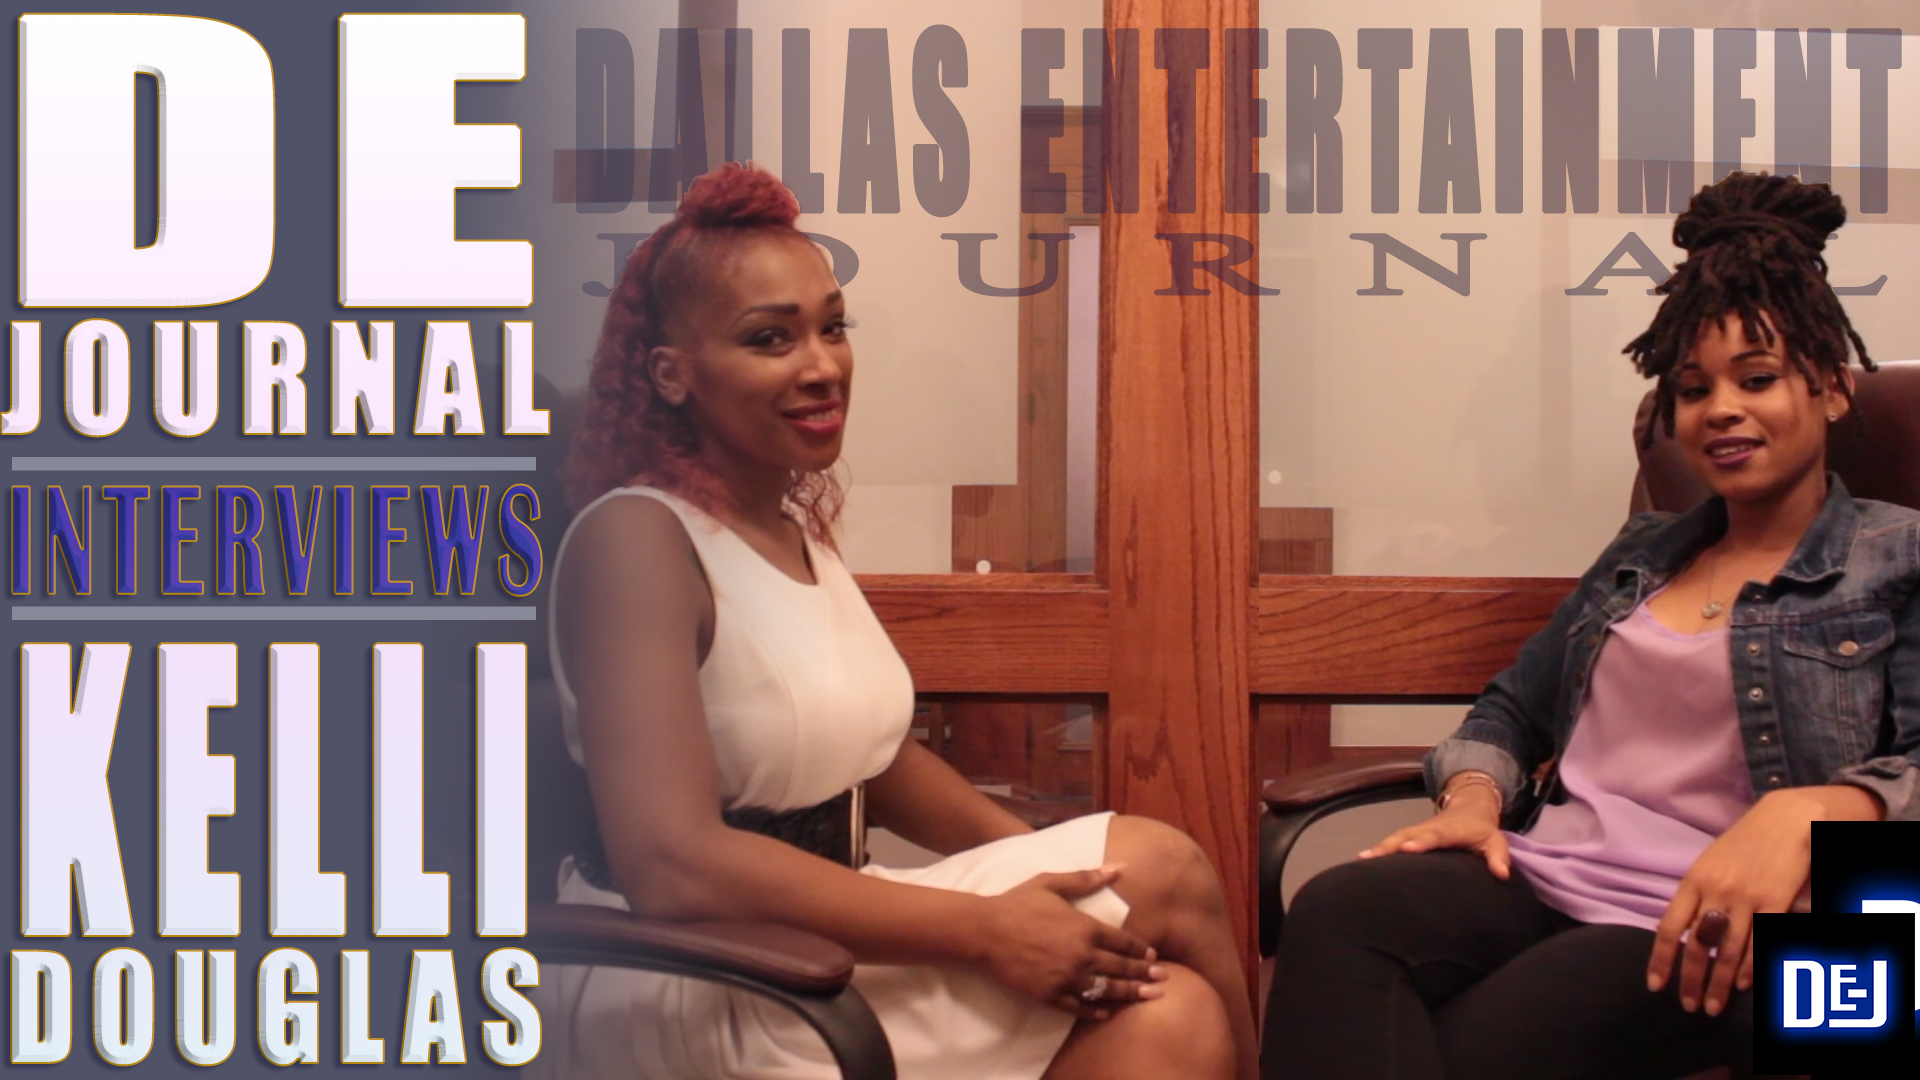 Dallas Entertainment Journal DEJ DE Journal Interviews Kelli Douglas